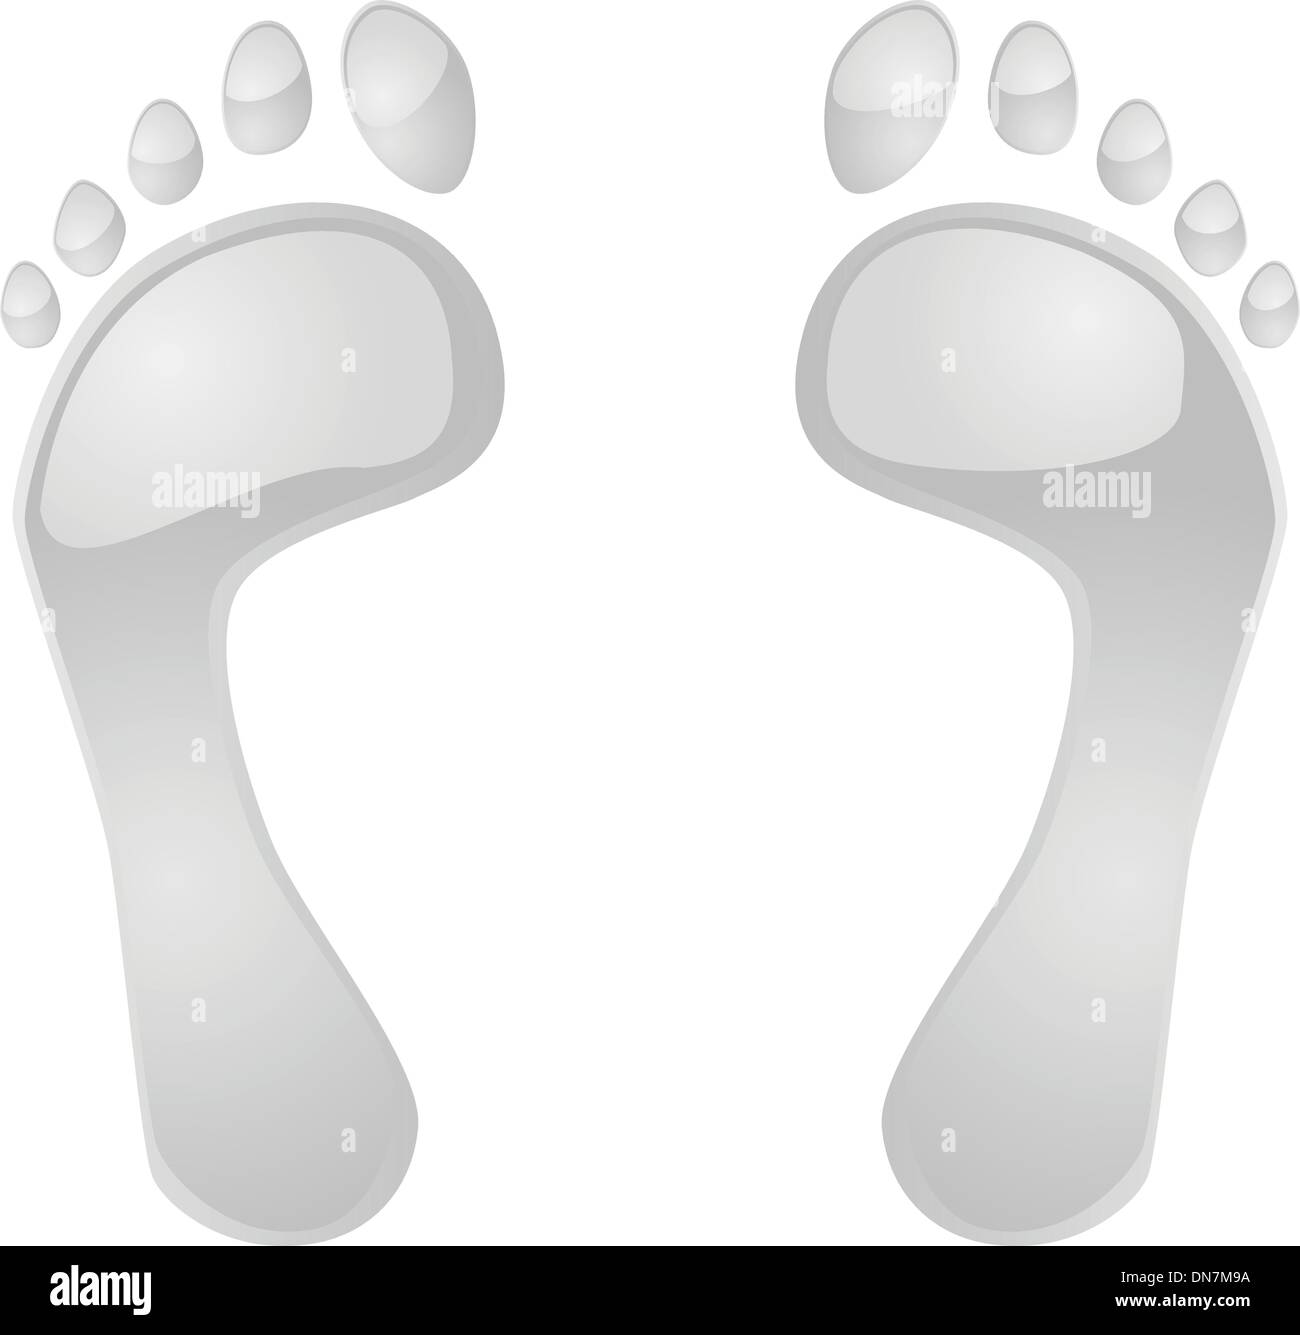 Glossy feet - Stock Vector